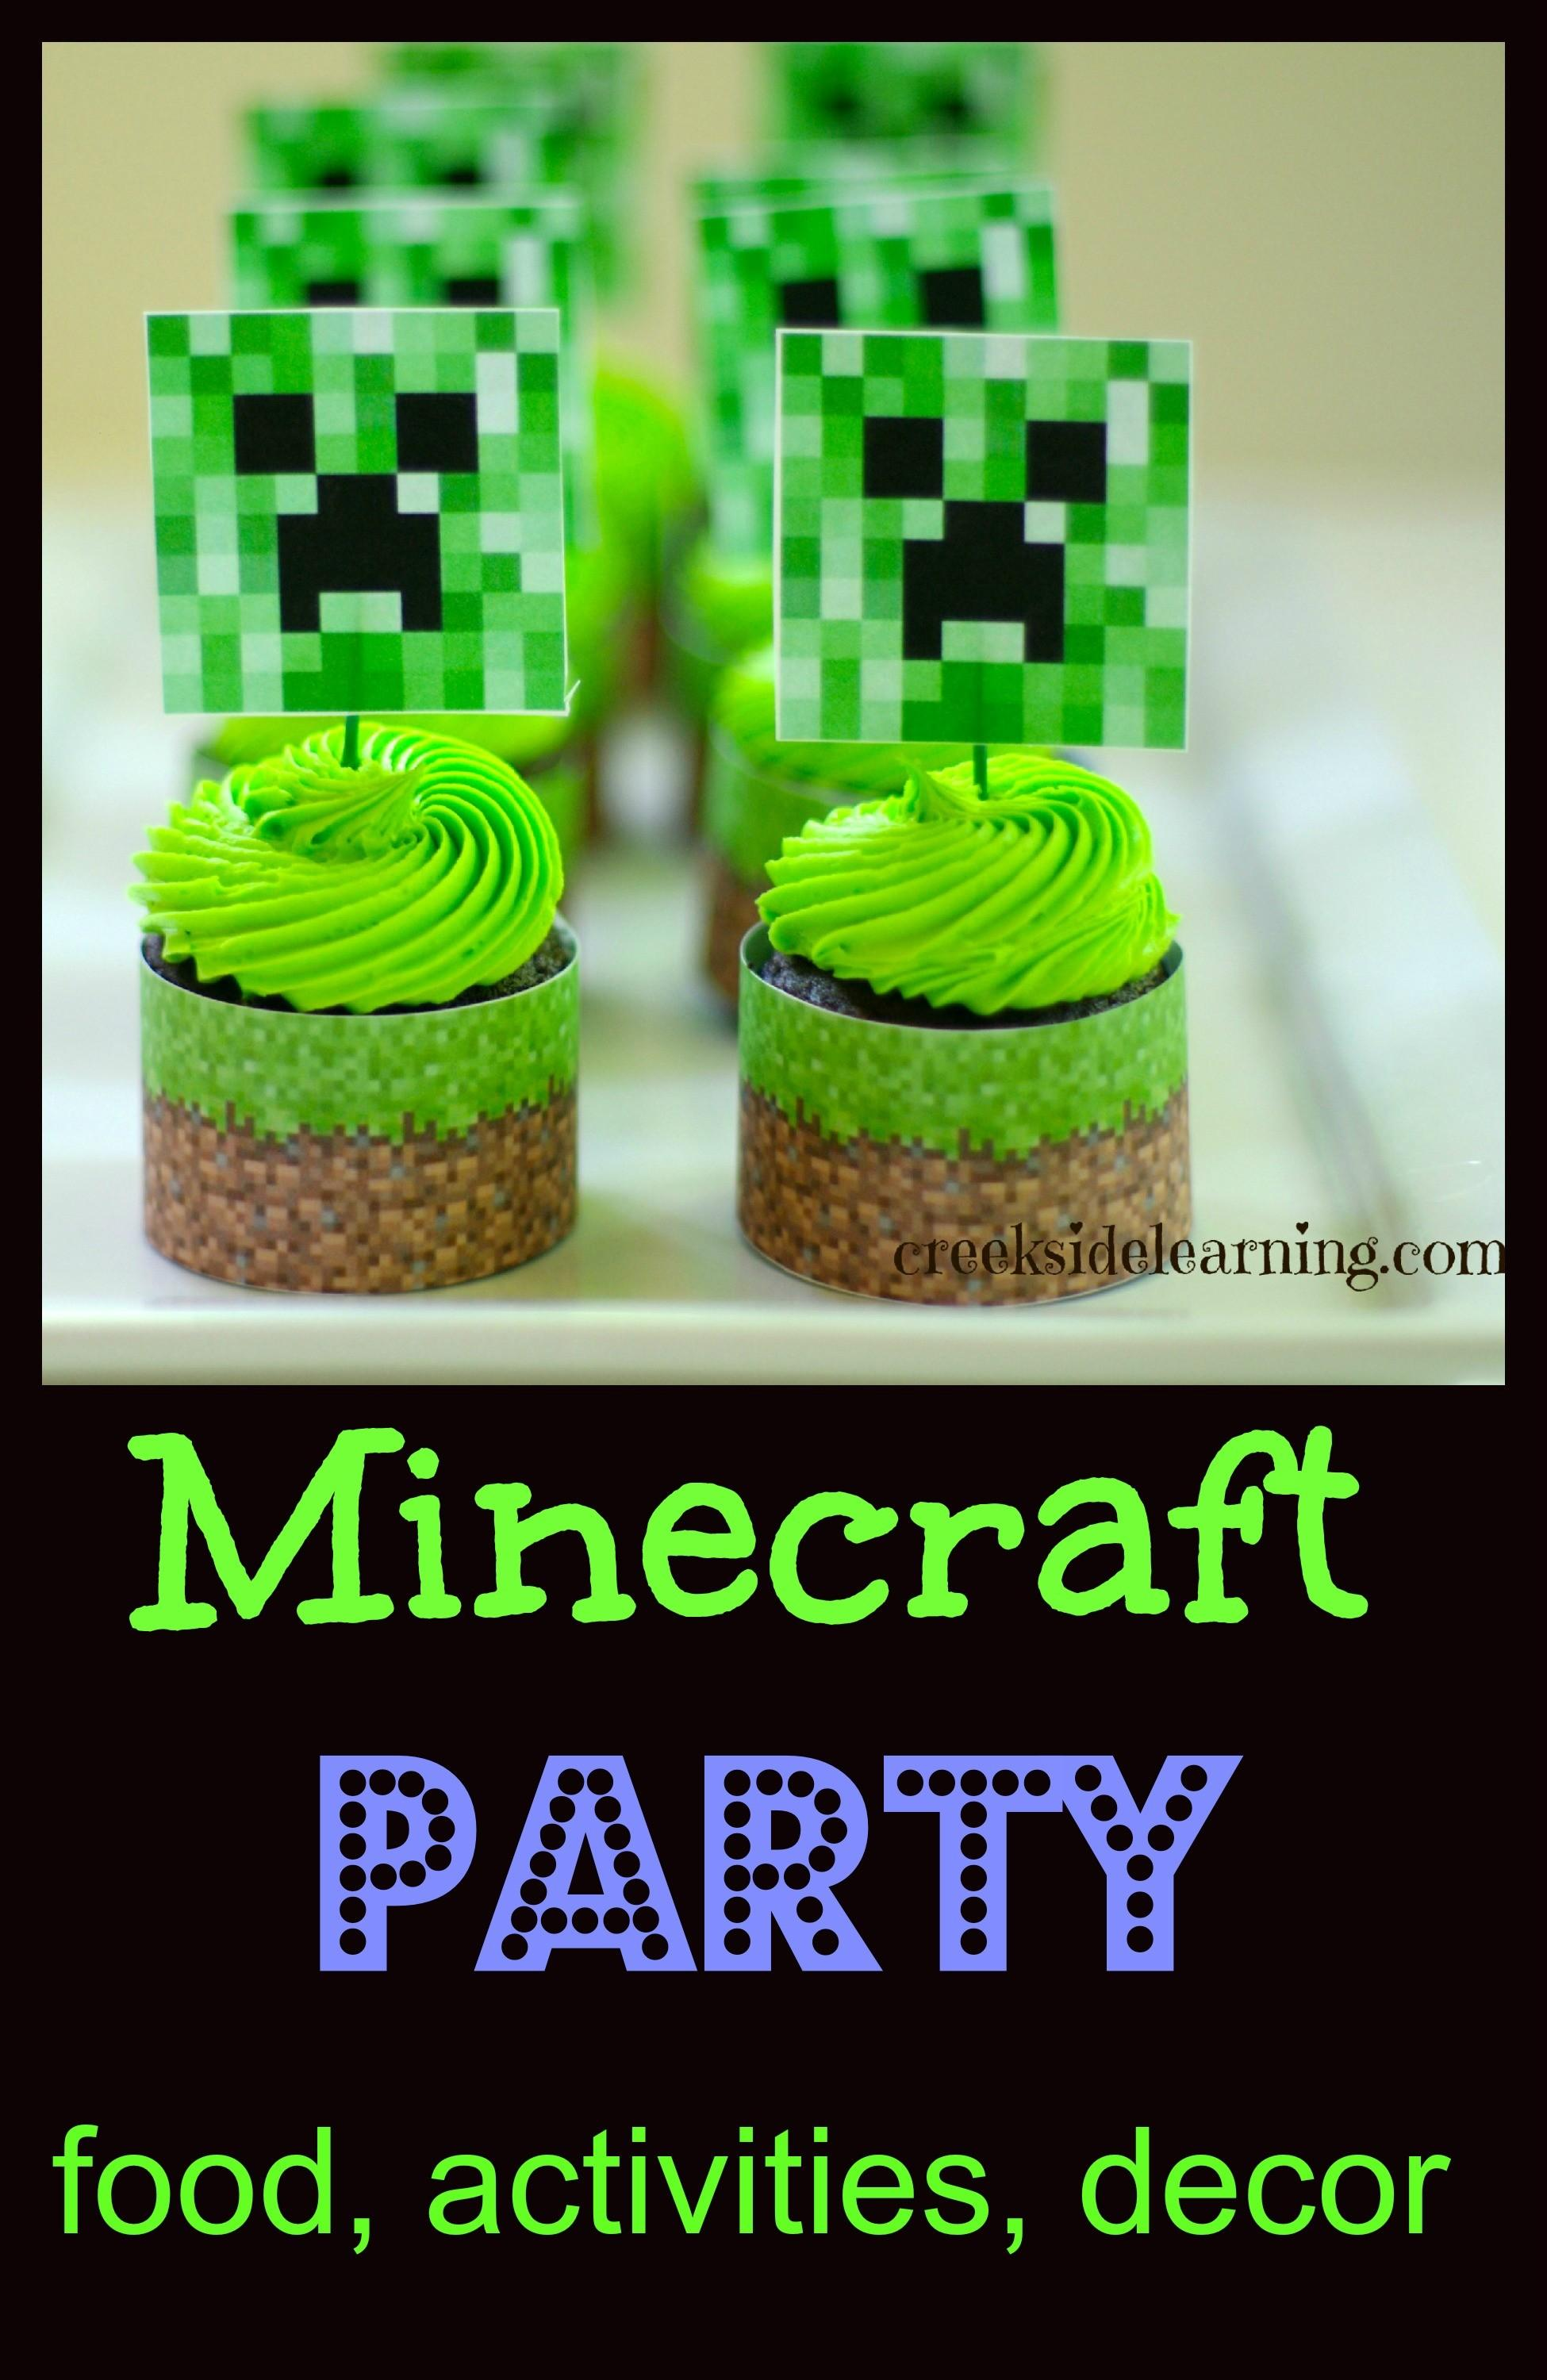 Minecraft Party Round Creekside Learning